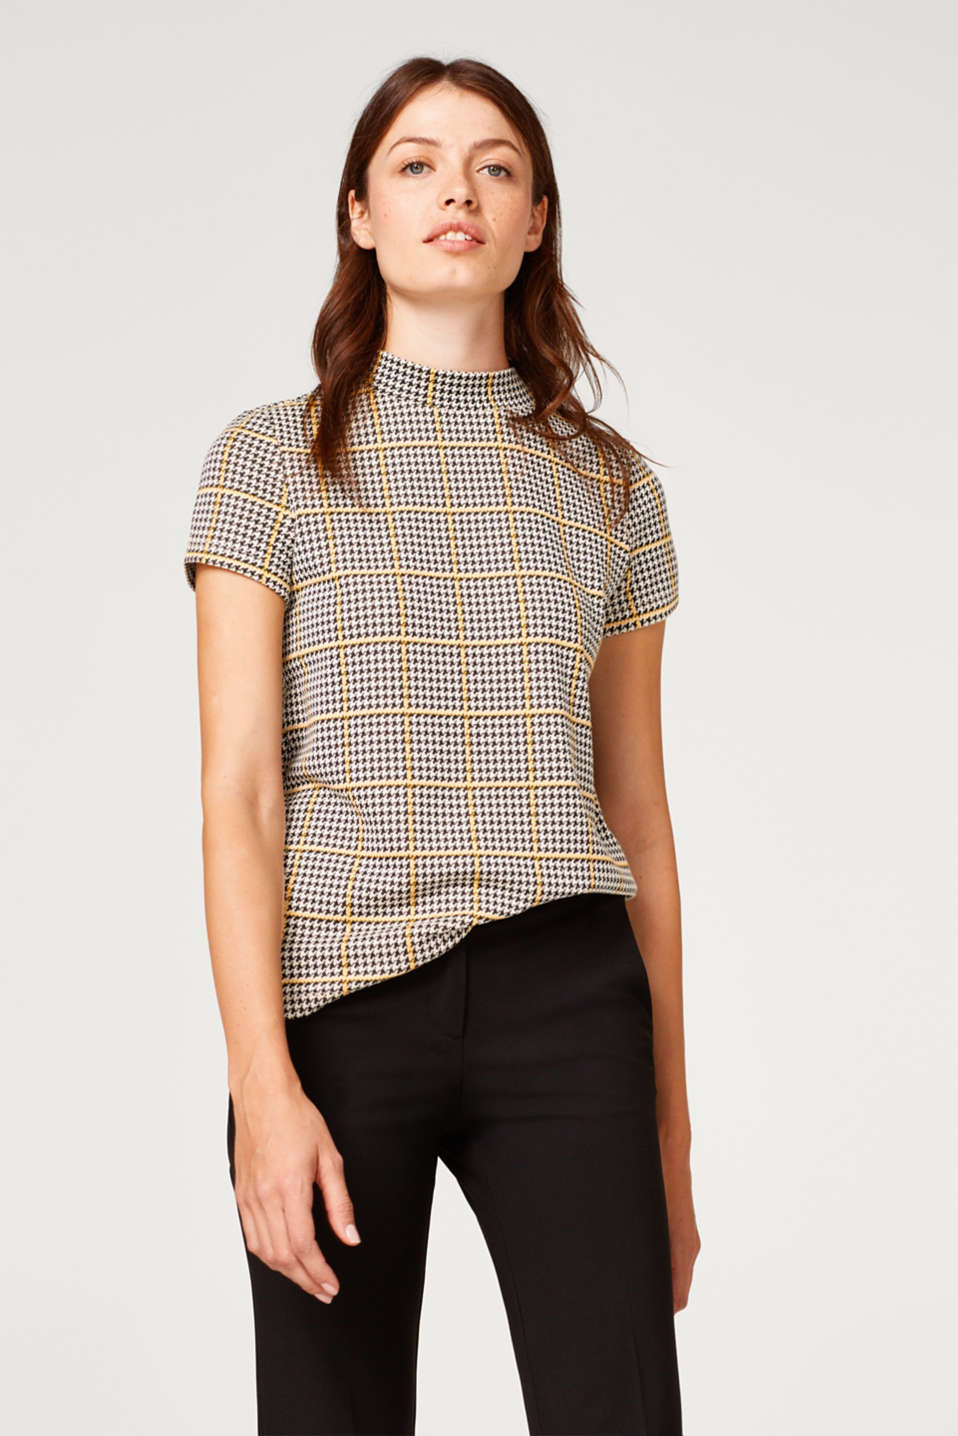 Esprit - Turtleneck top with a houndstooth check